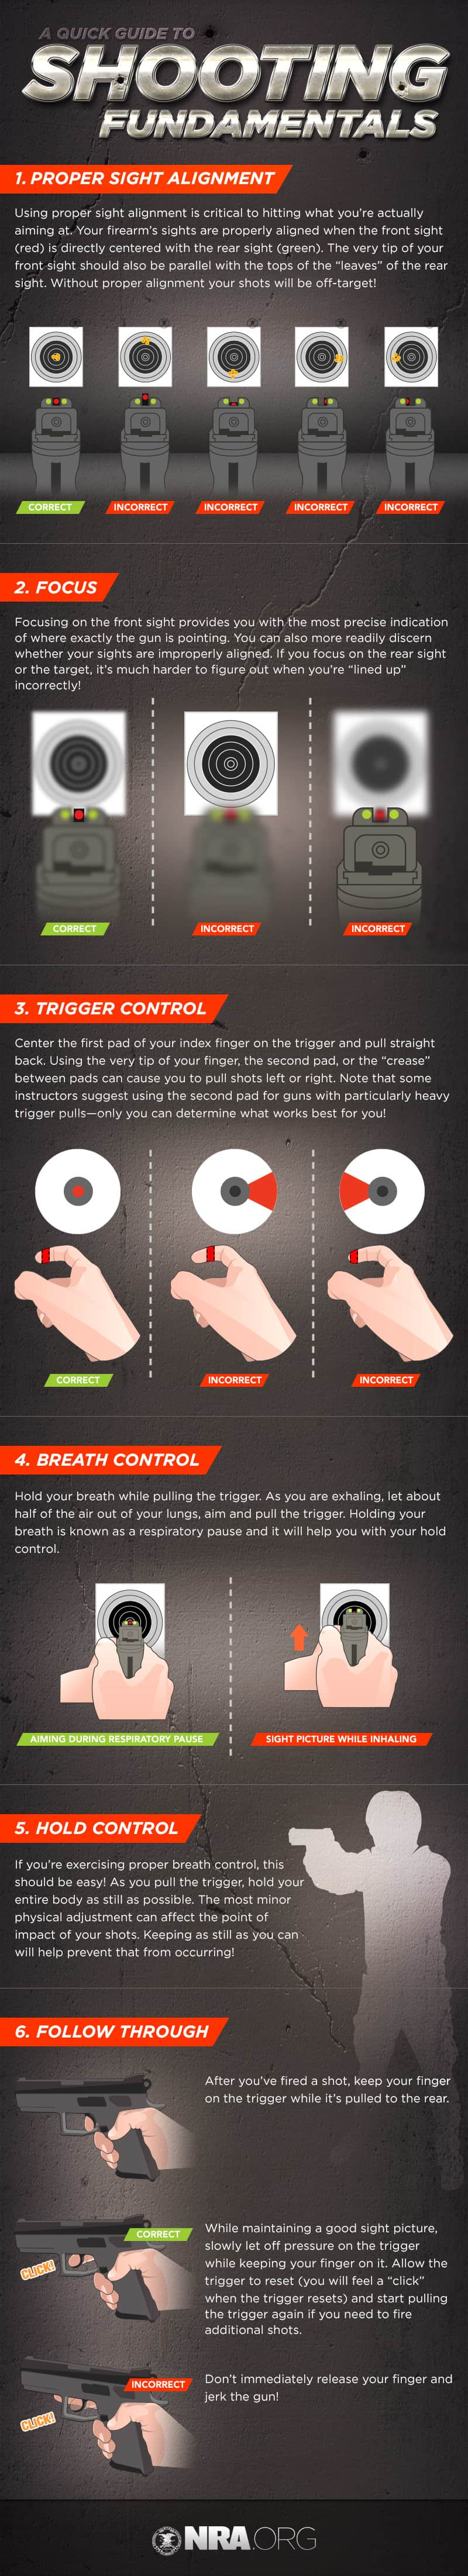 NRAInfographic_ShootingFundamentals_05